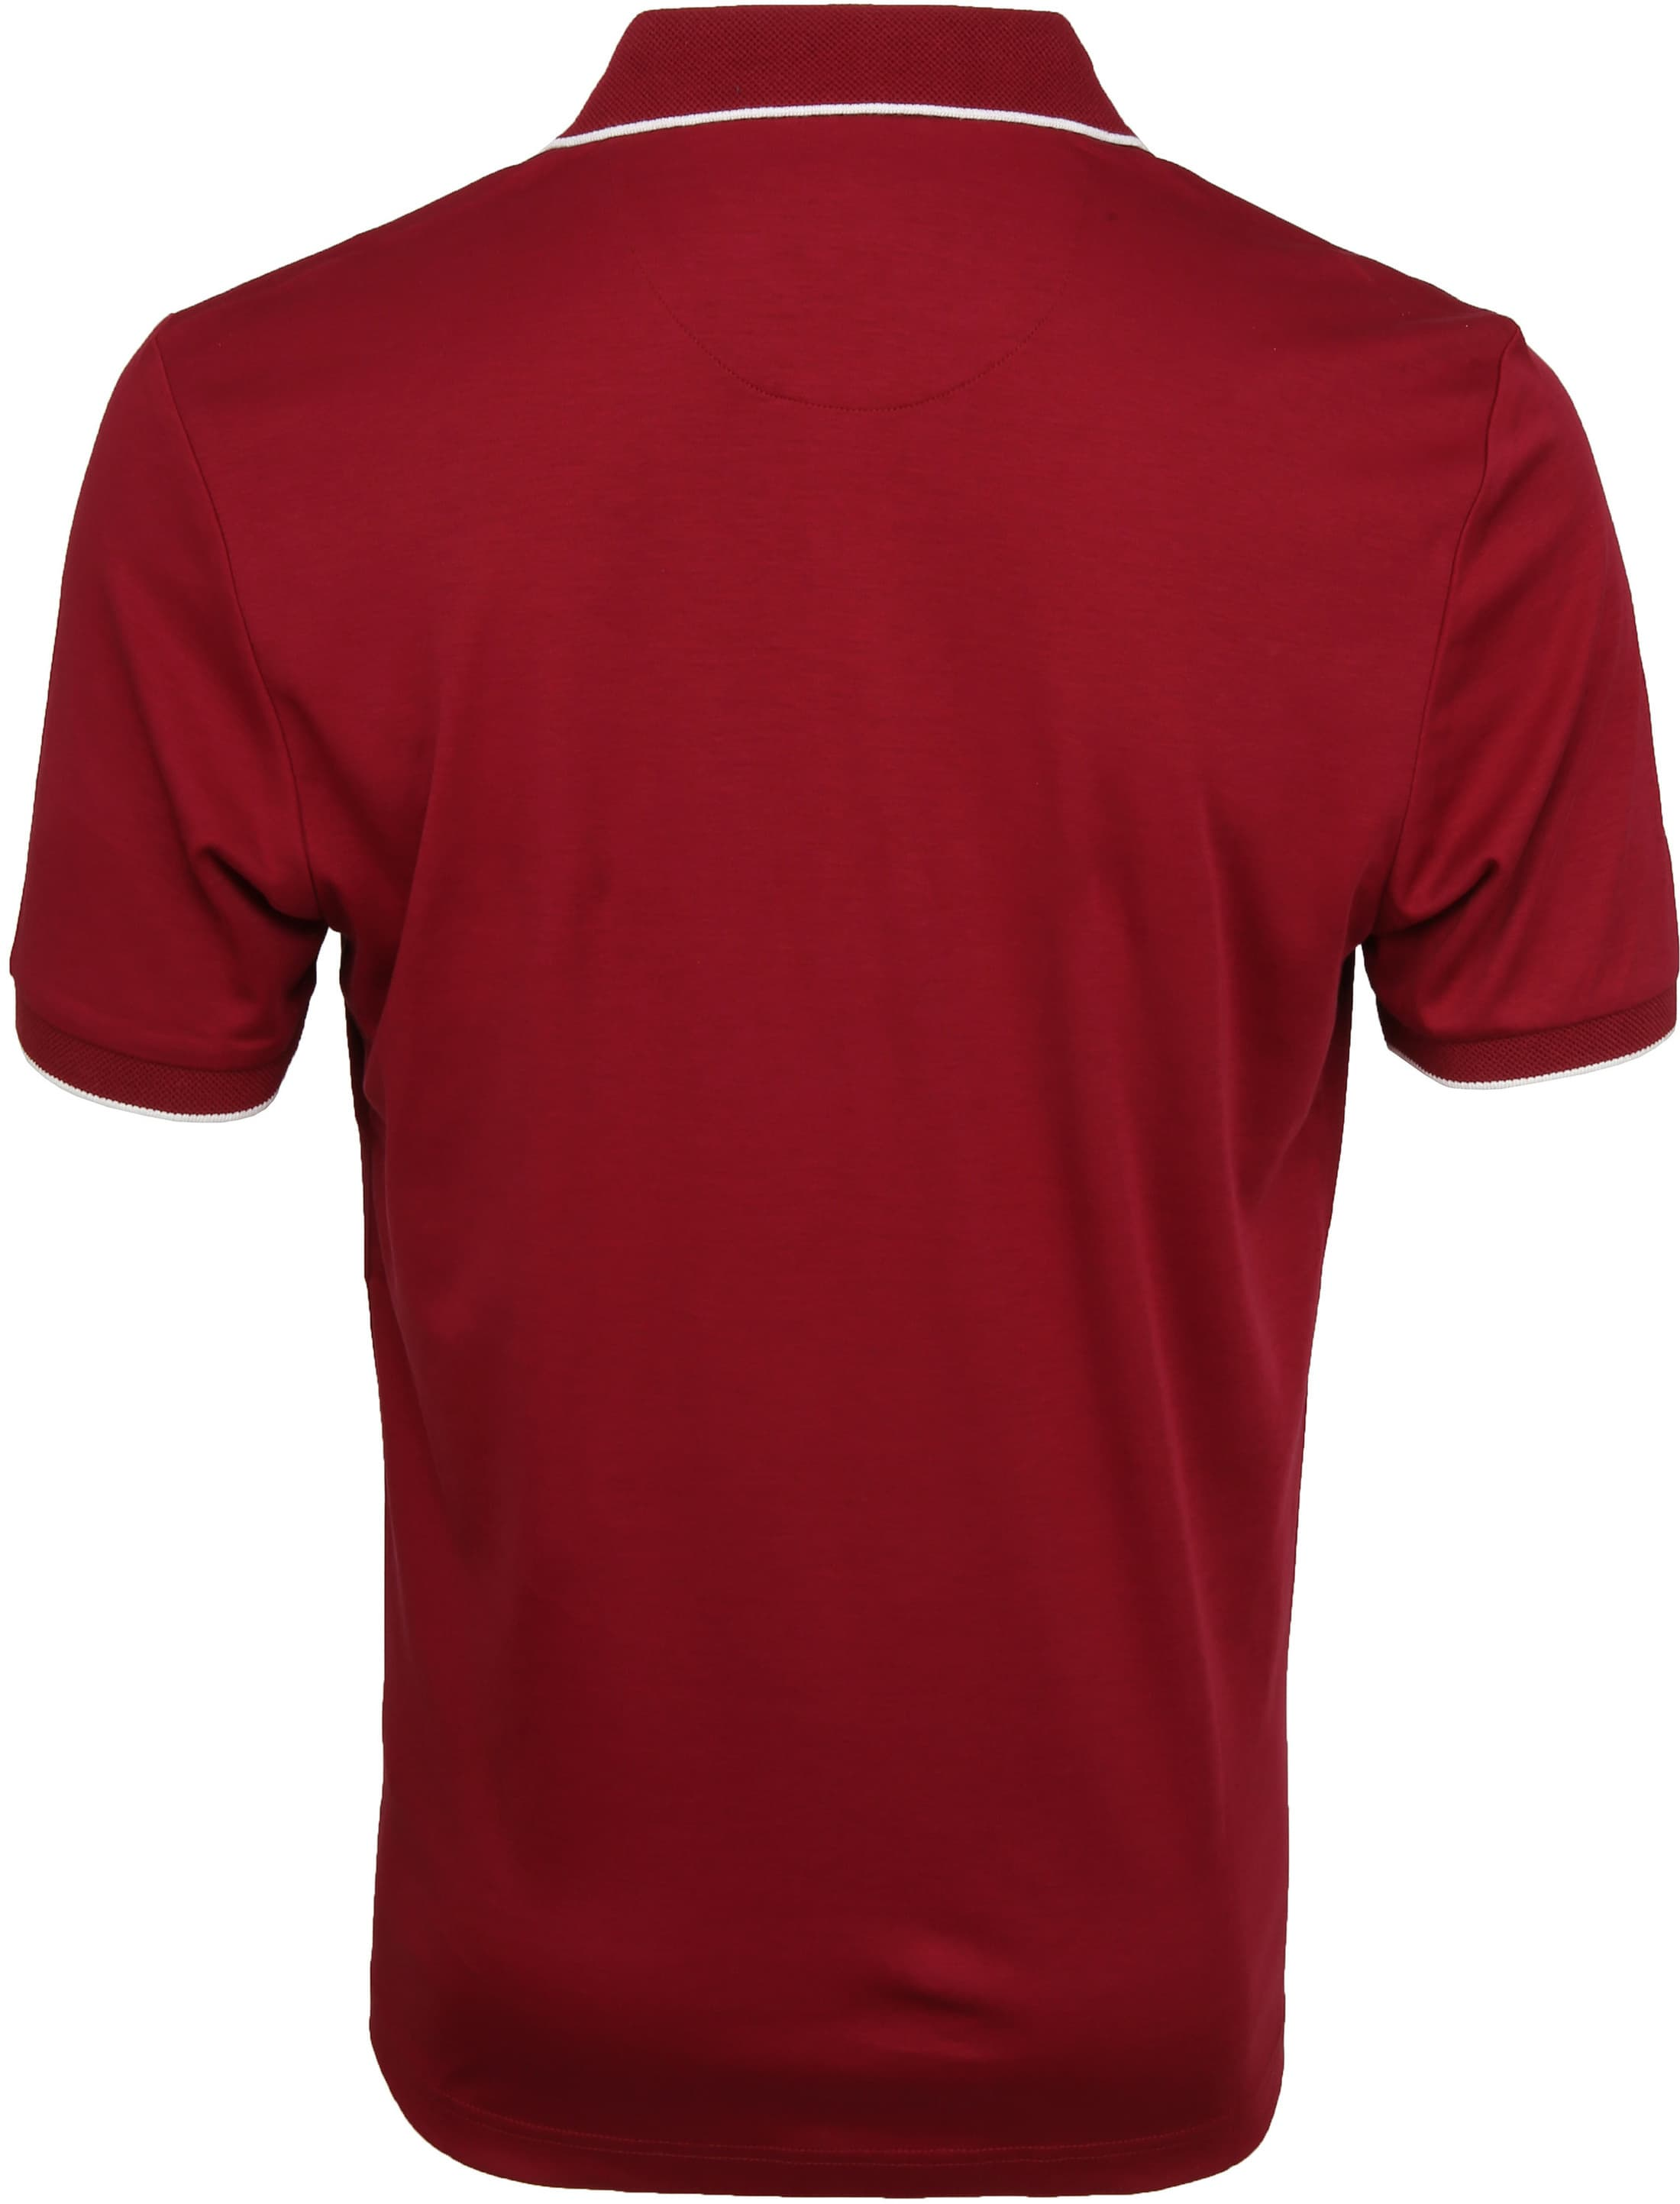 Suitable Liquid Poloshirt Burgundy foto 3